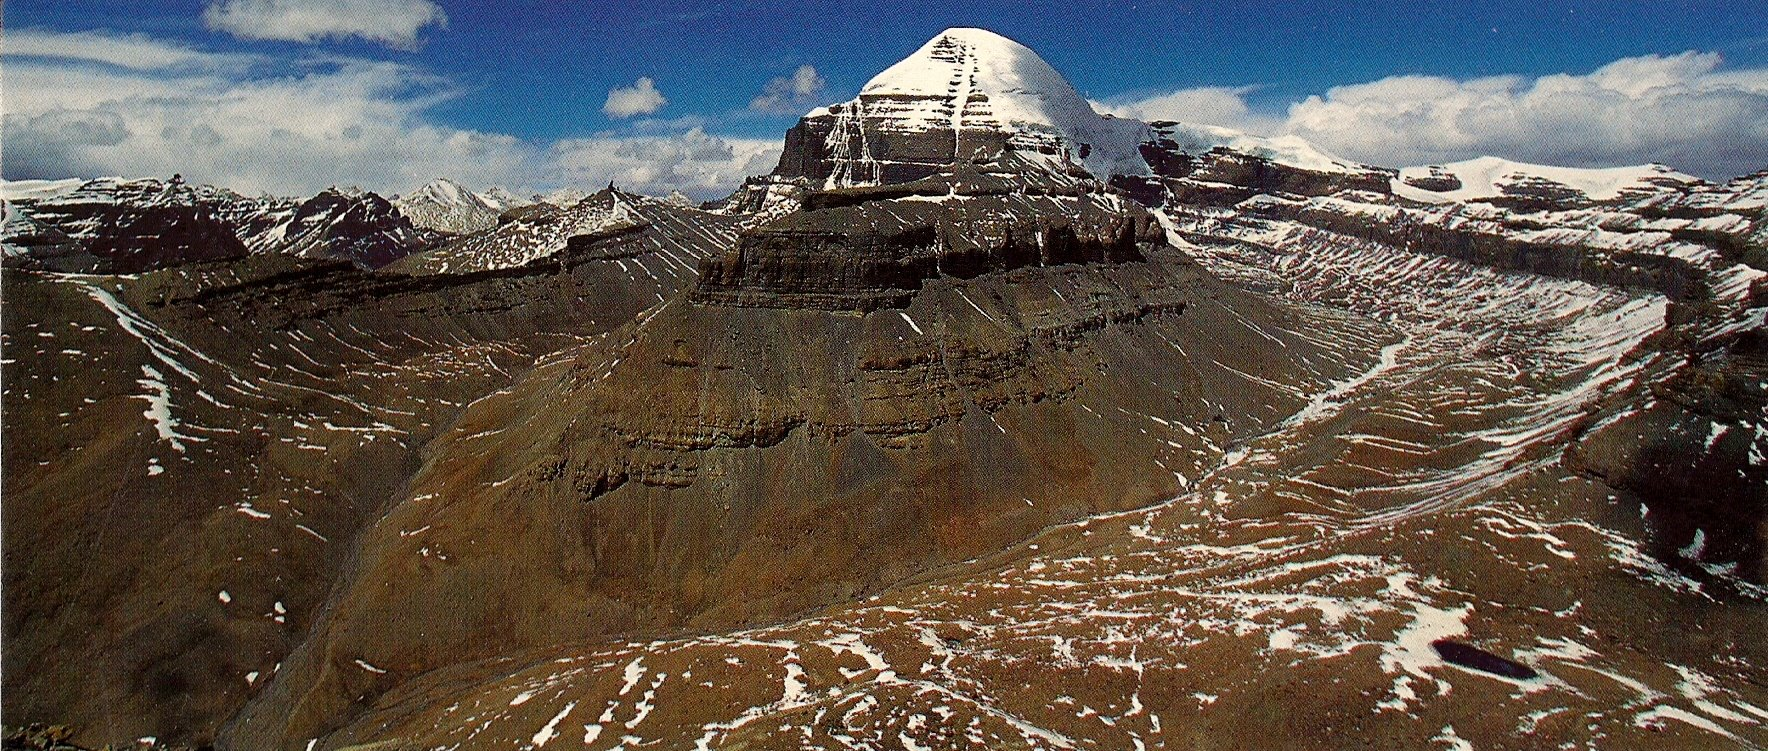 Kailash Mansarovar Wallpapers Free Download